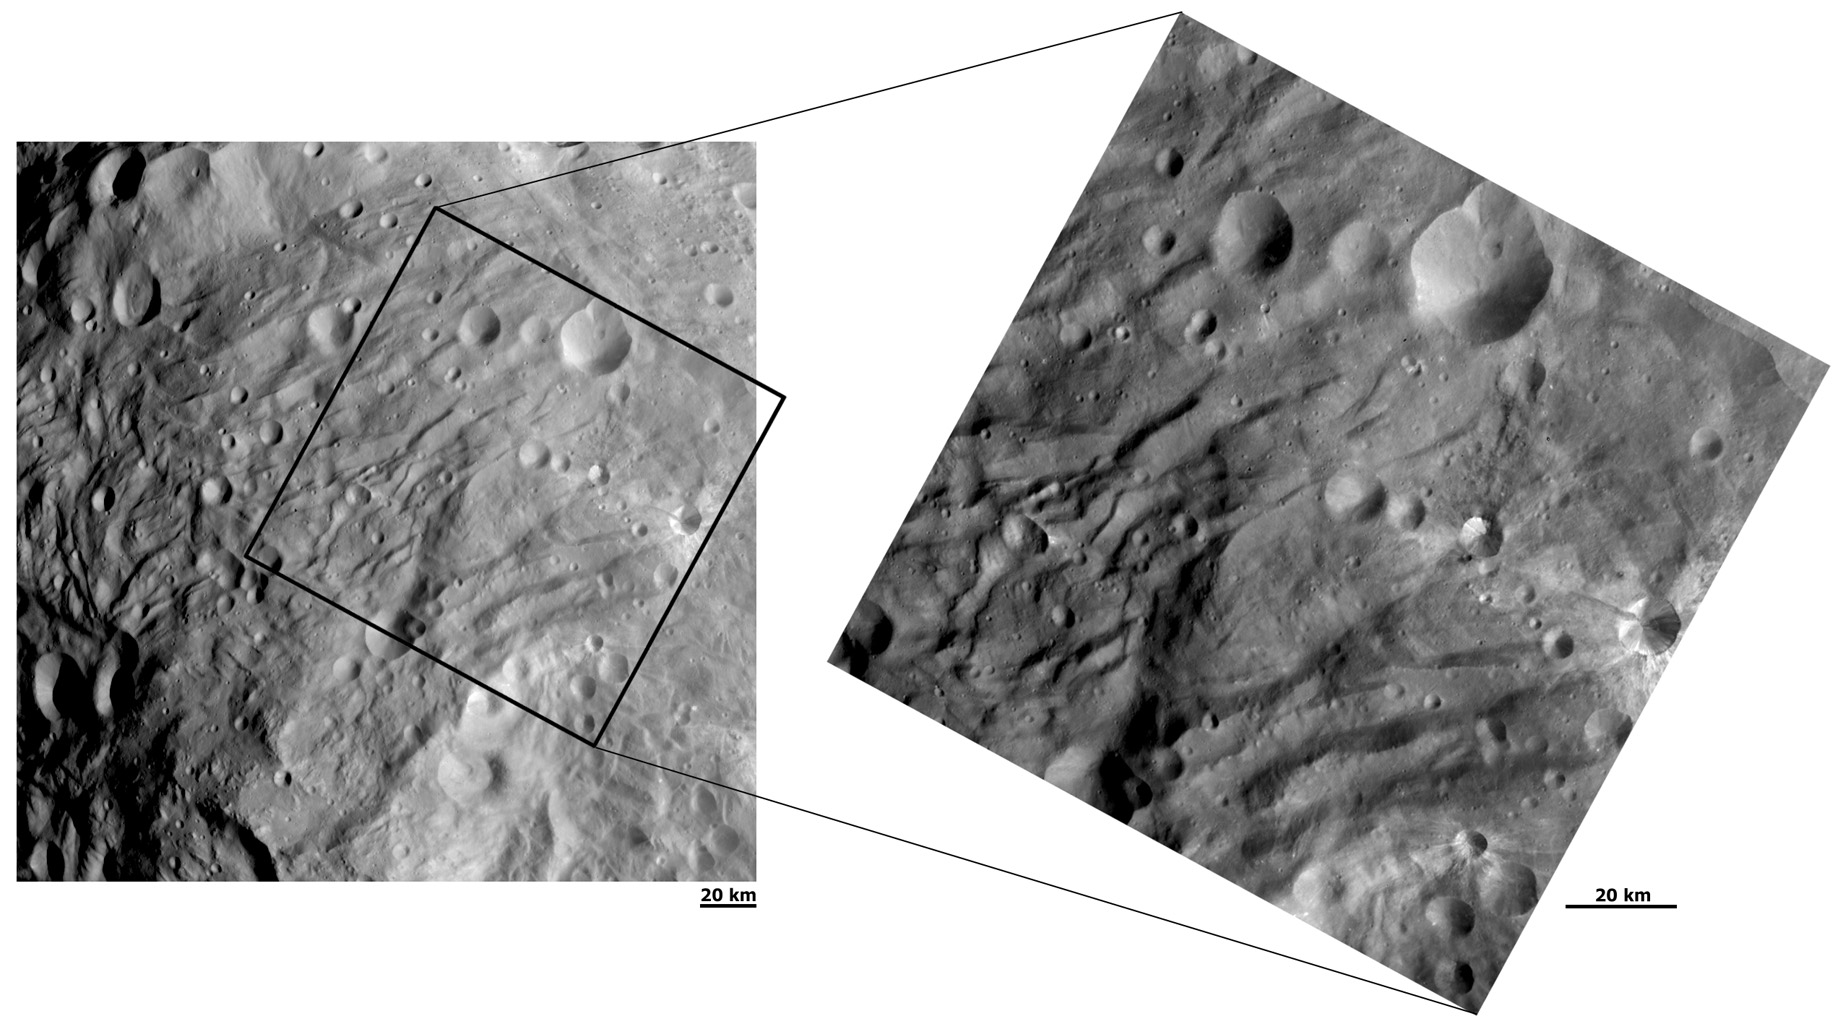 Closing in on the Wrinkles and Grooves at Vesta's South Pole